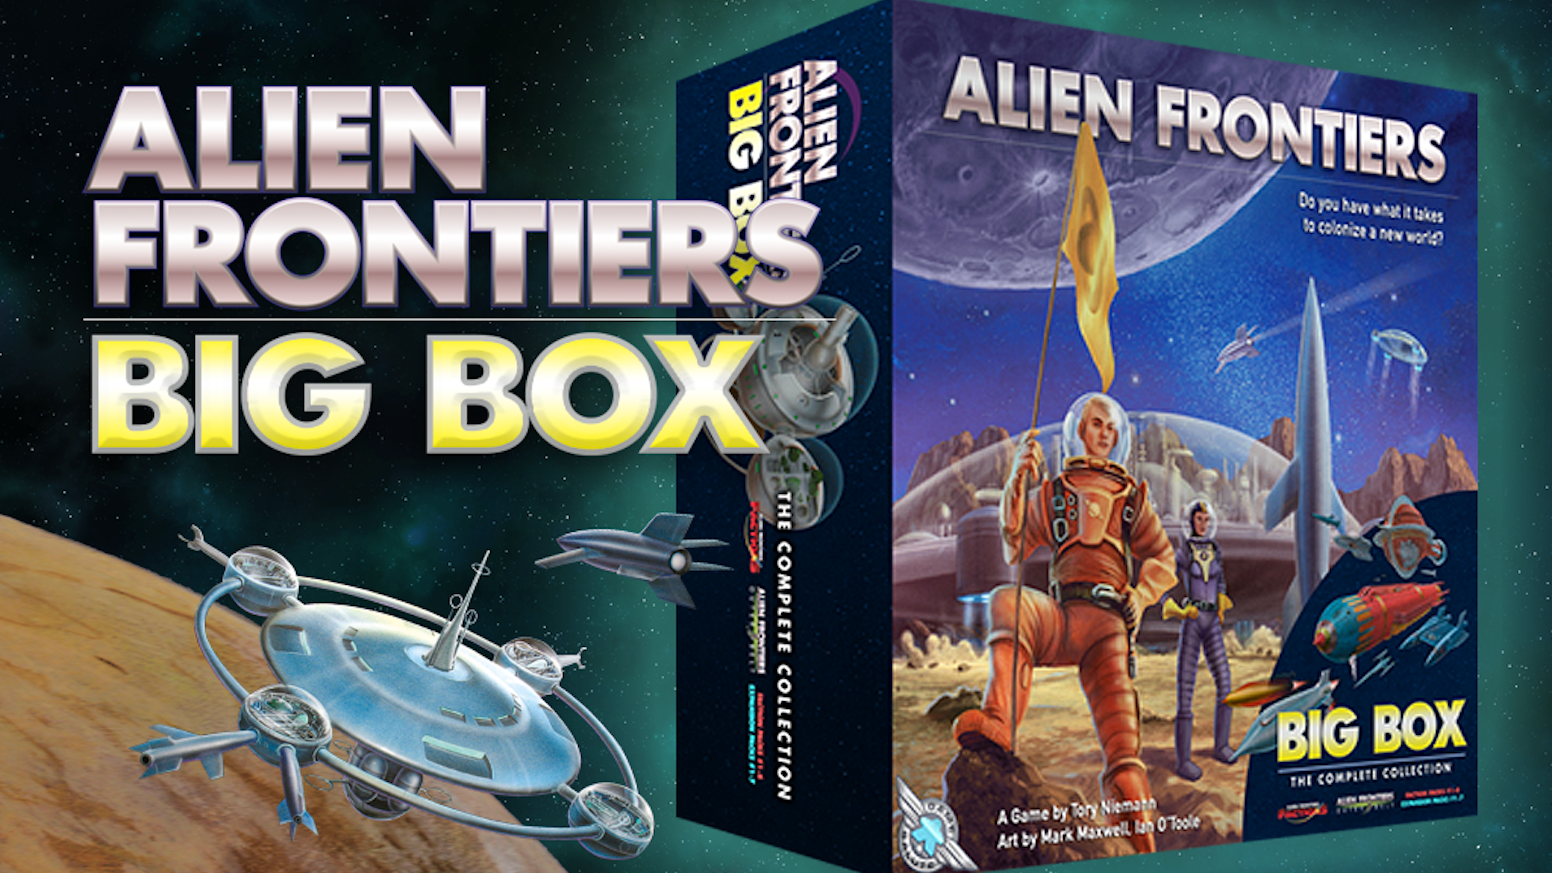 The entire Alien Frontiers universe in one amazing Big Box! Now with options for existing owners of Alien Frontiers!!